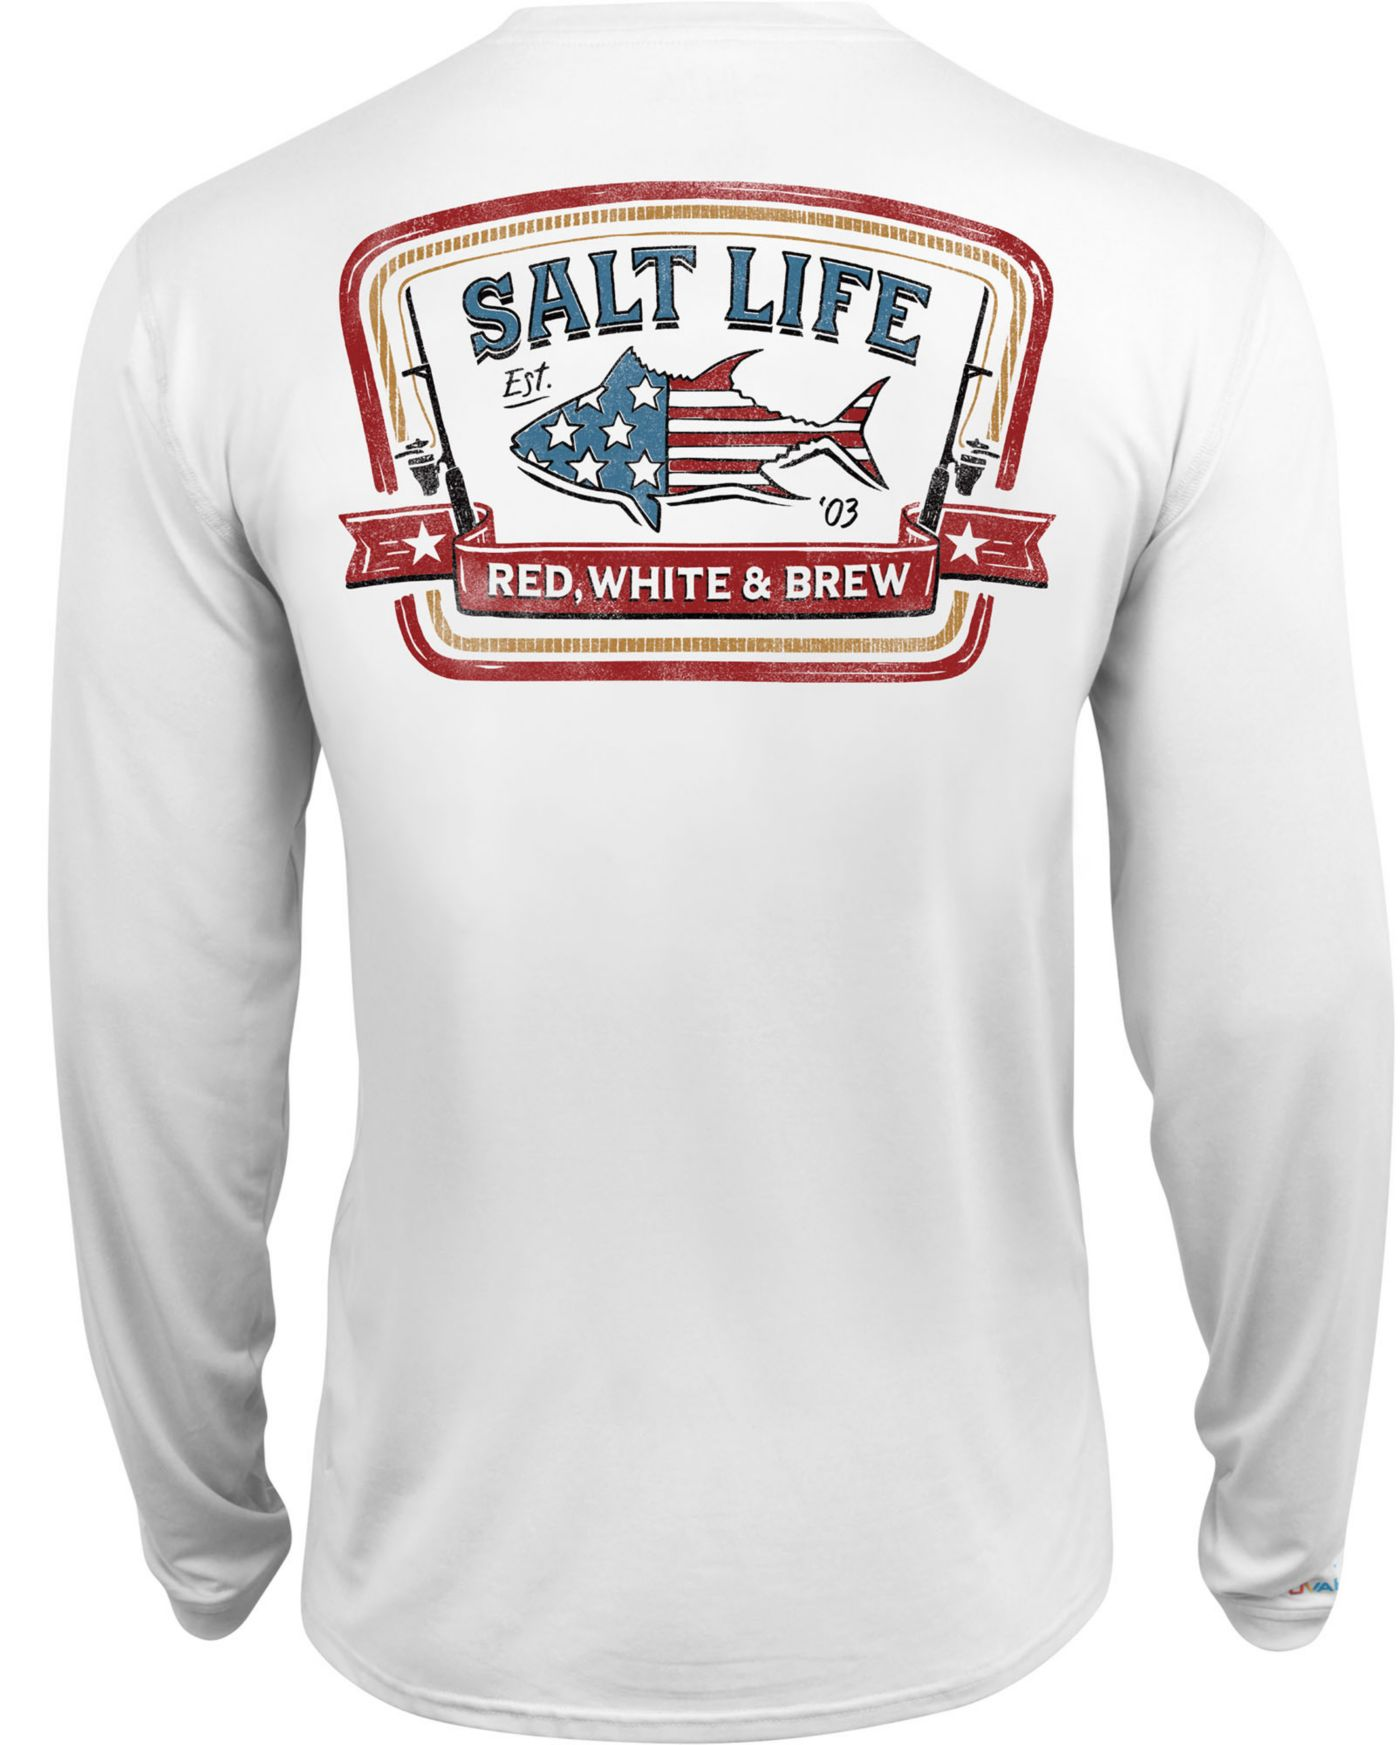 Salt Life Men's Red White and Brew Performance Long Sleeve Shirt